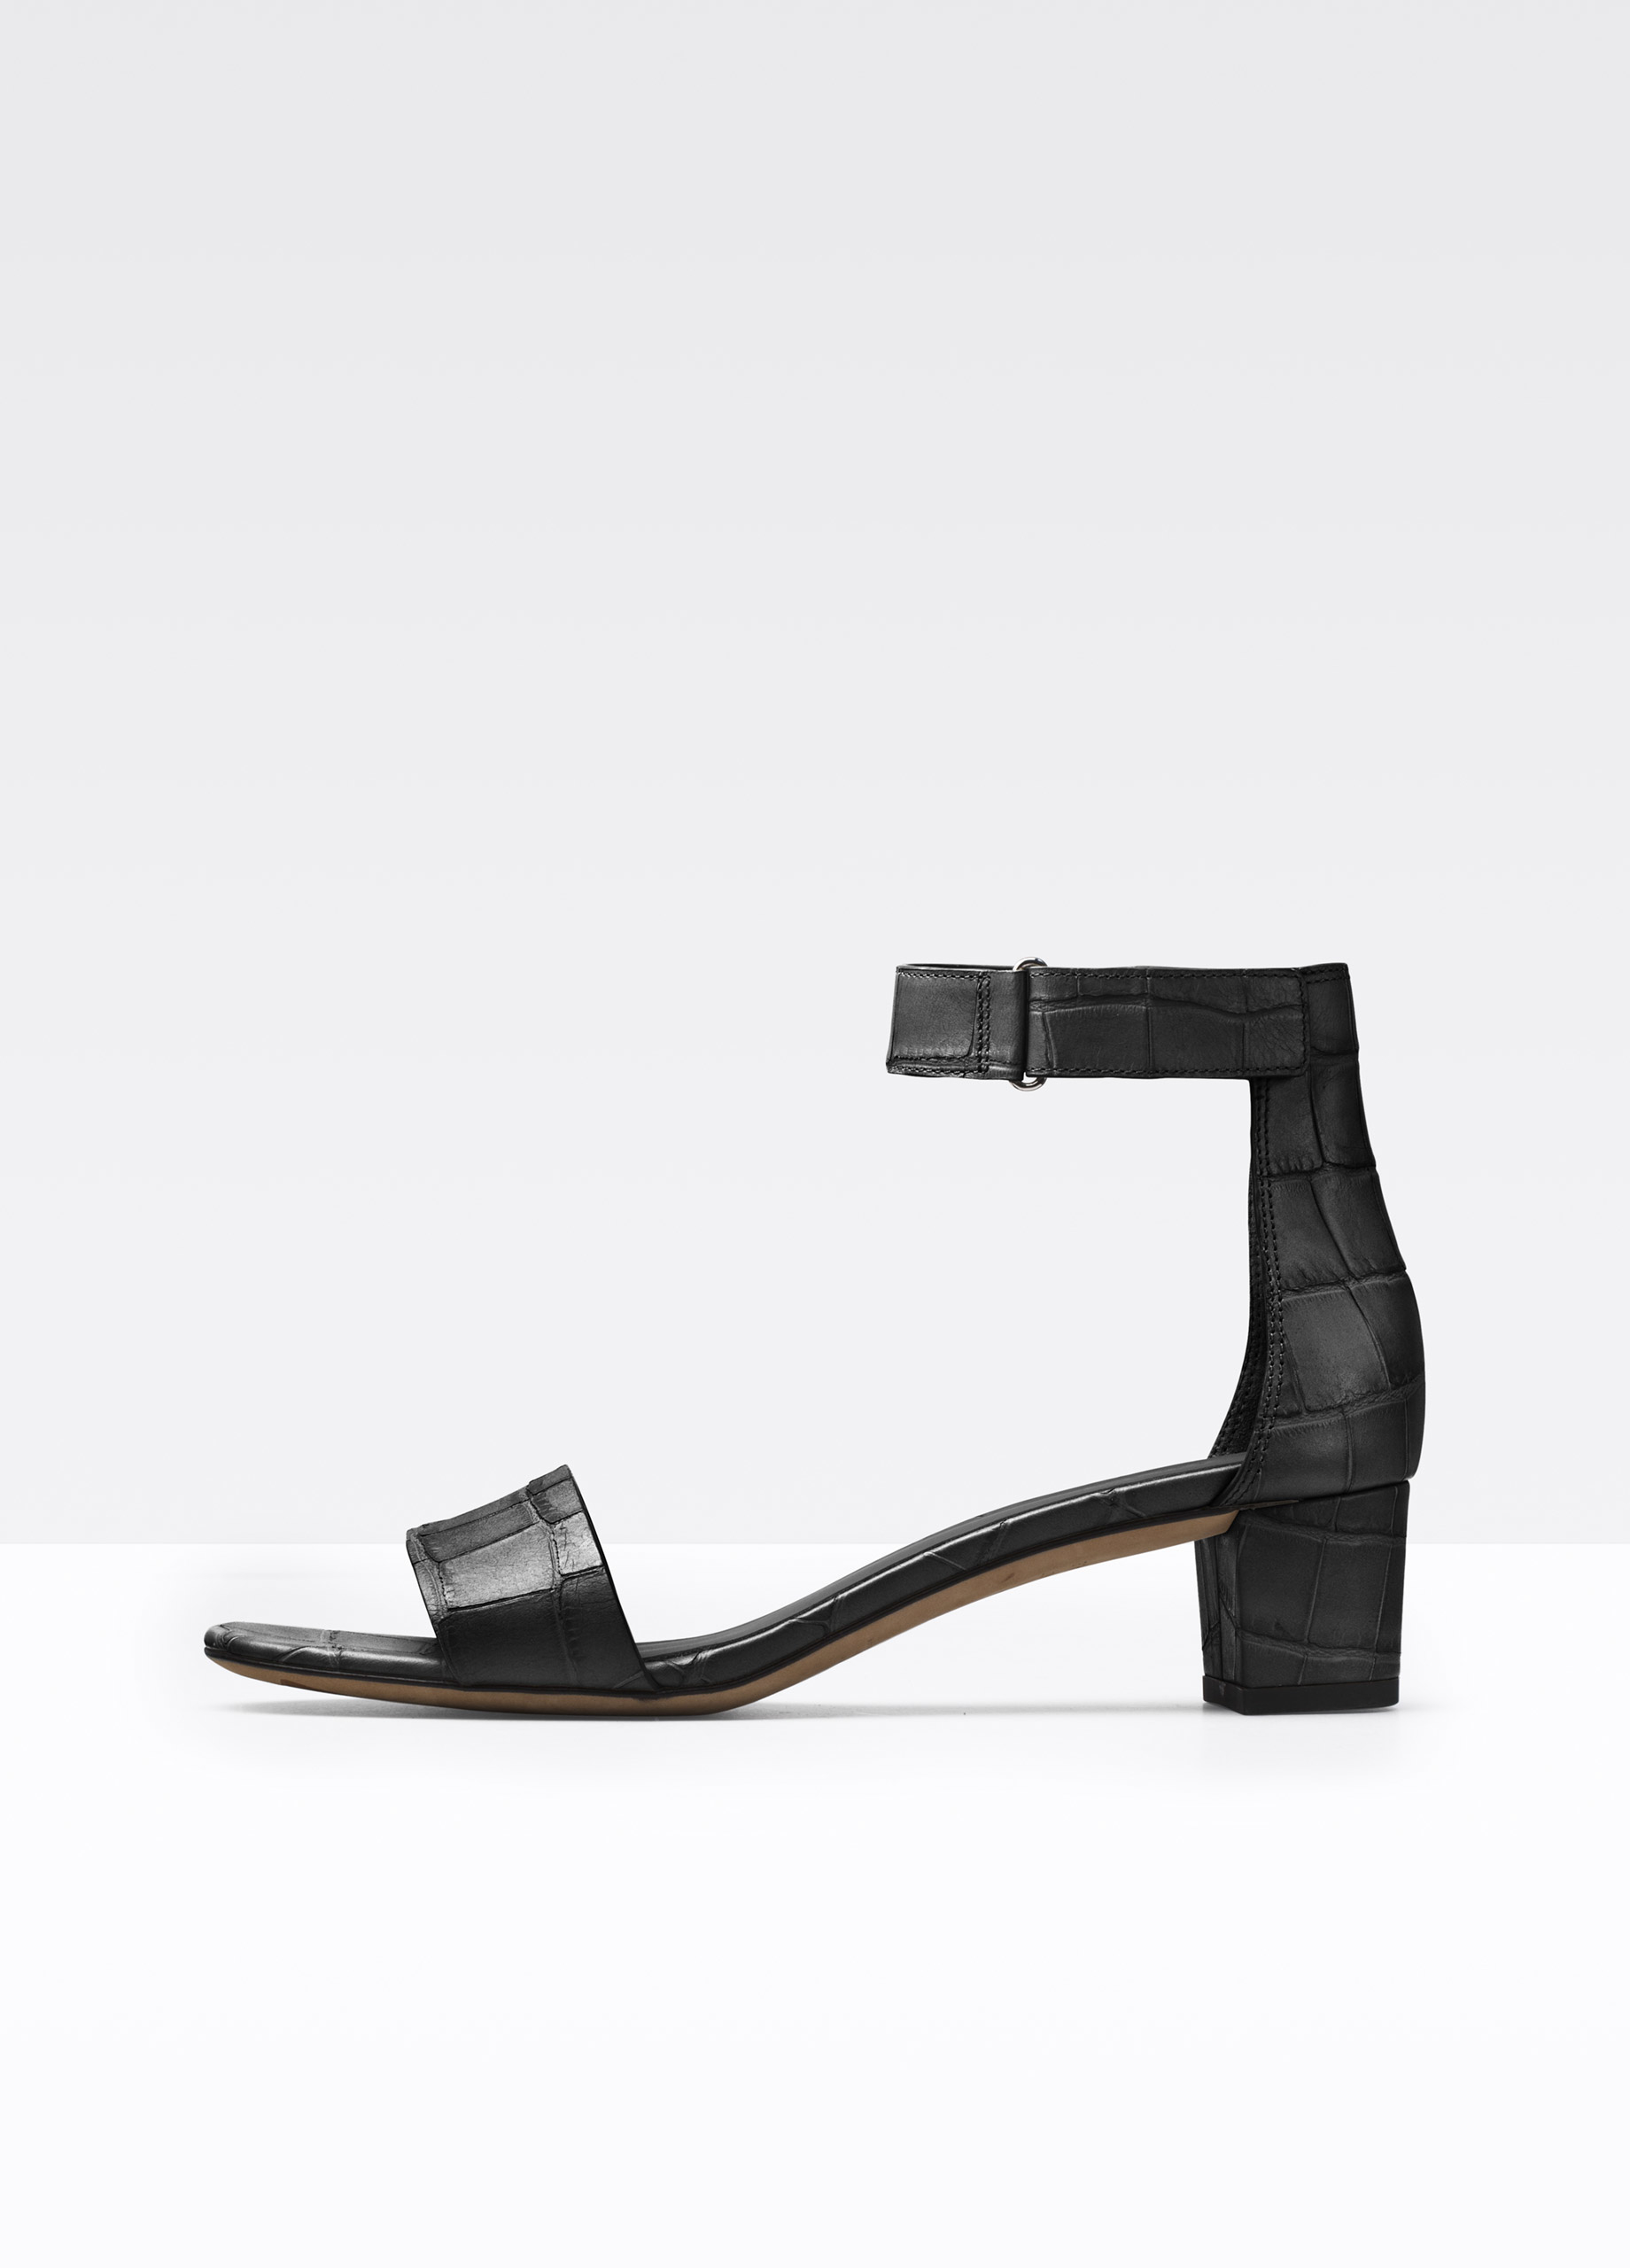 Vince Rita Croc Printed Leather City Sandal In Black Lyst